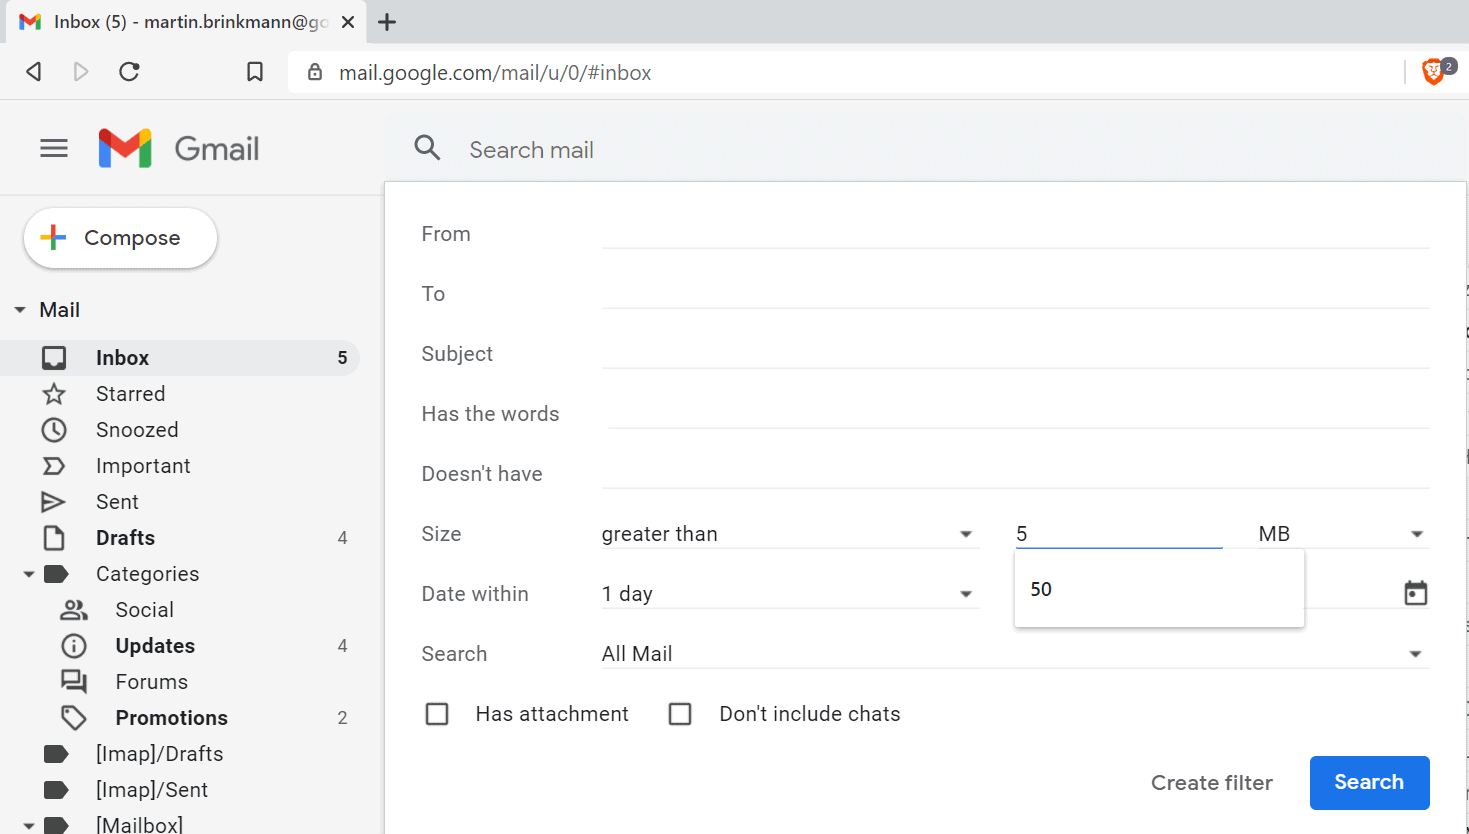 gmail search filters